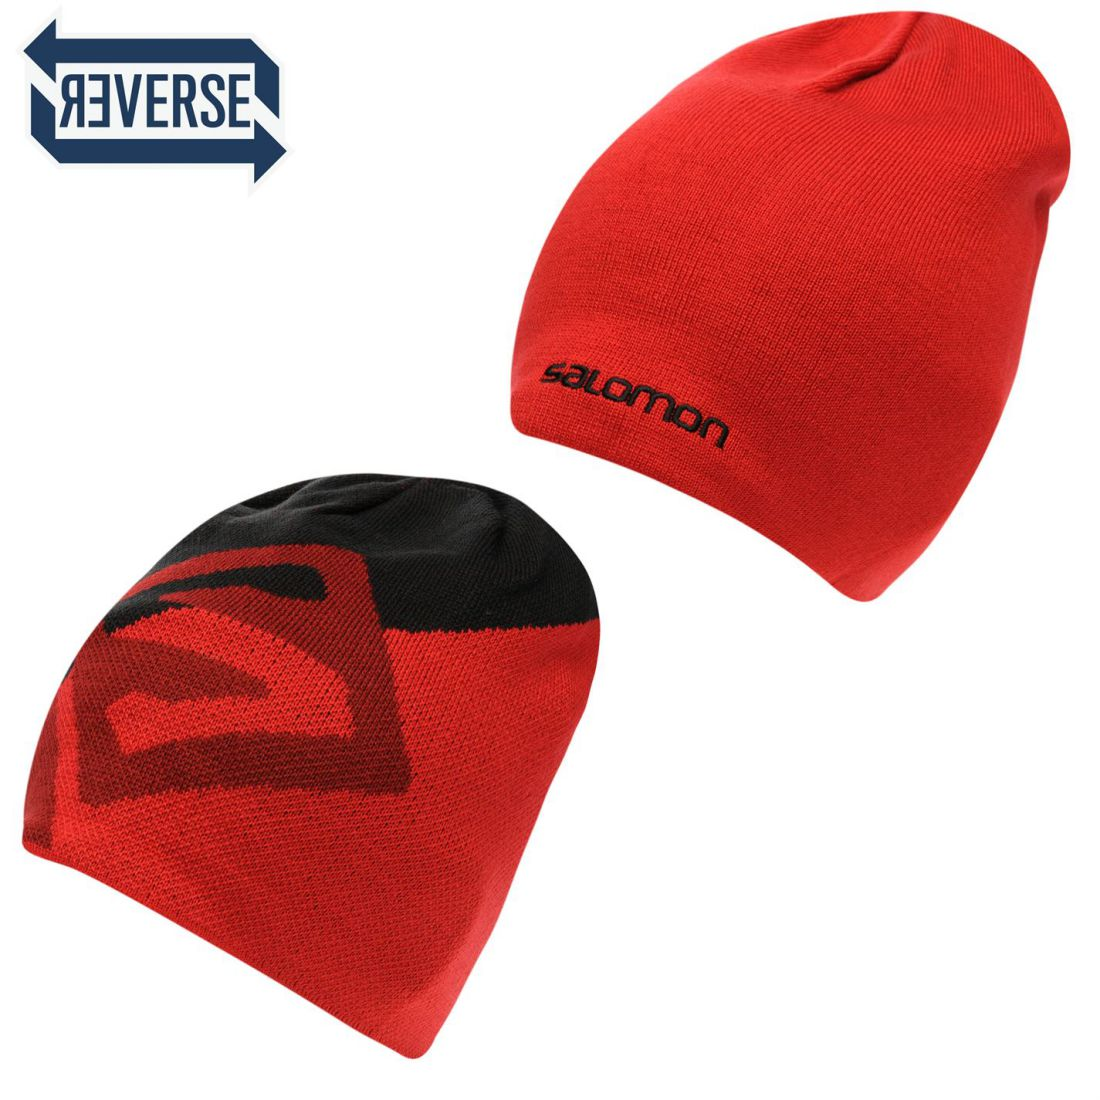 Details about Salomon Mens Gents Reversible Hat Sport Activities Winter  Snow Headwear 75b4855a9a0